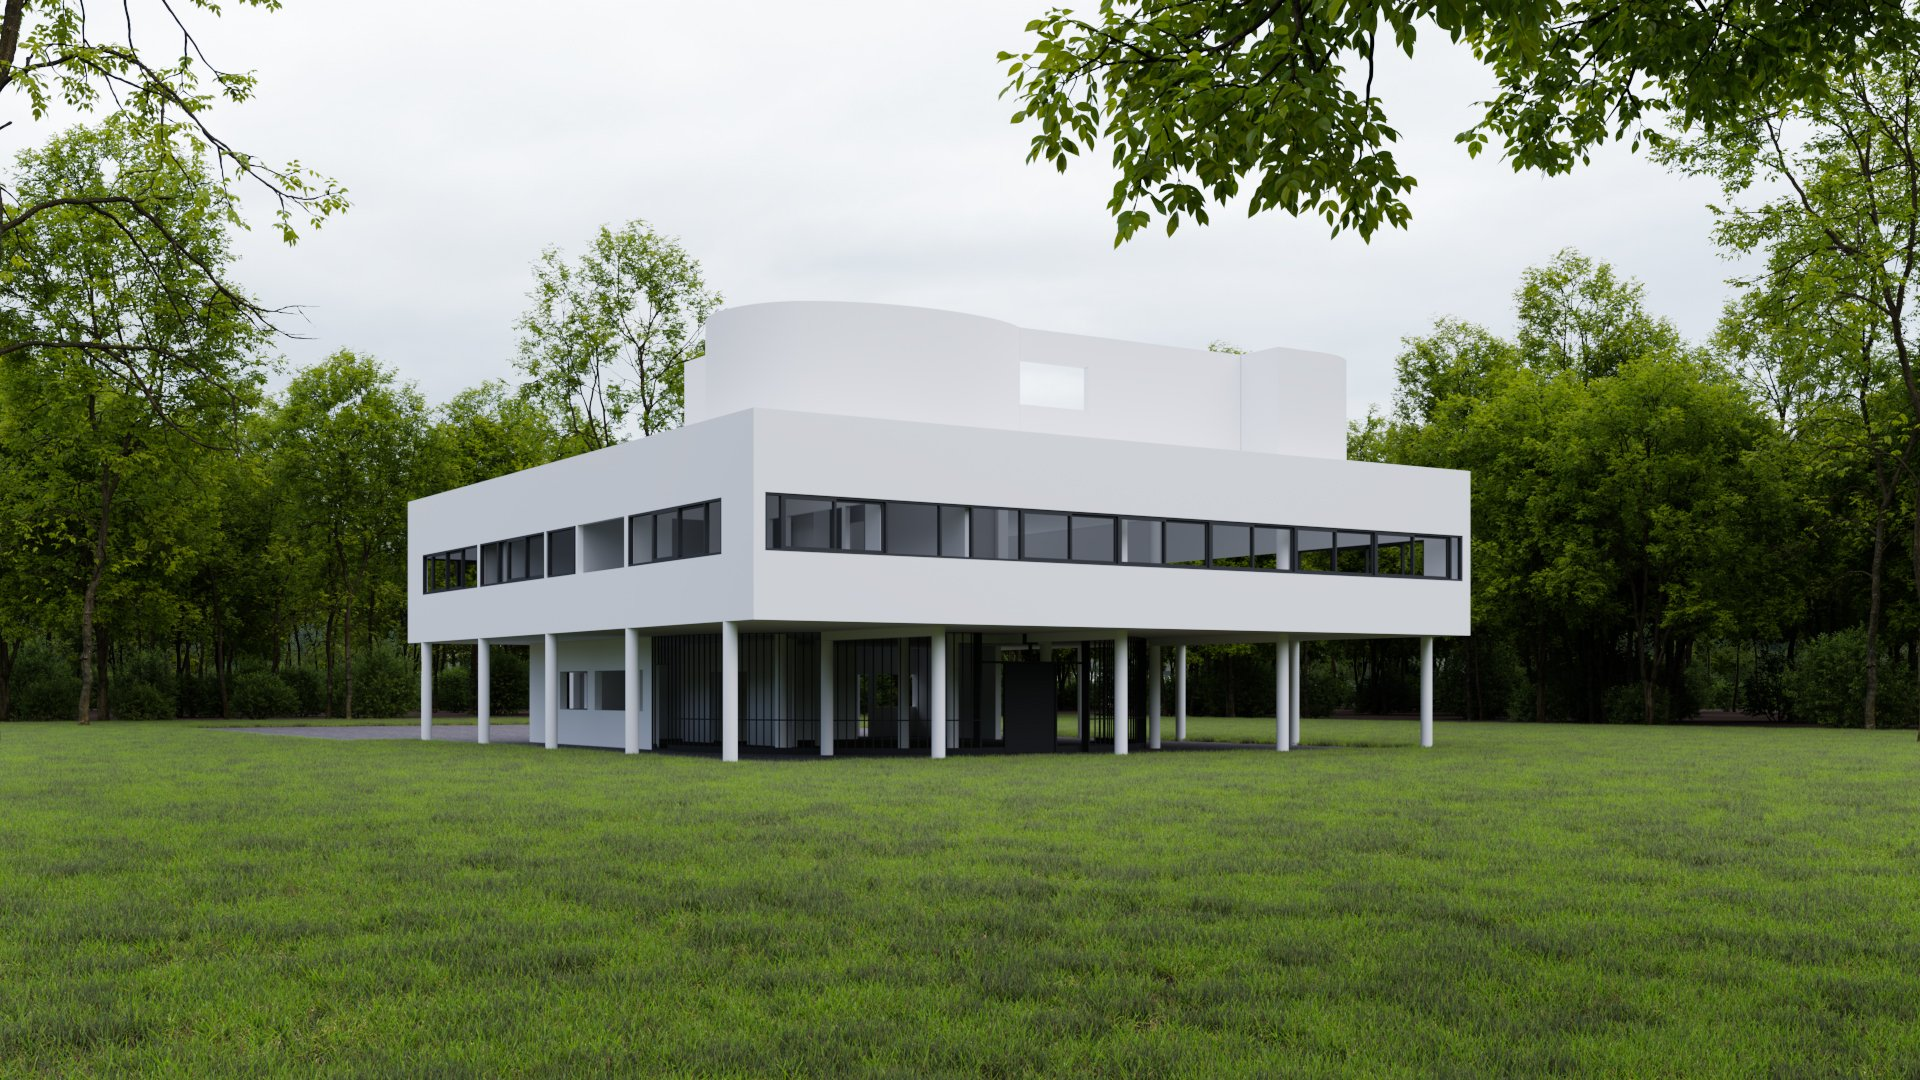 CG Exterior Render Showing a Modern Building in Context